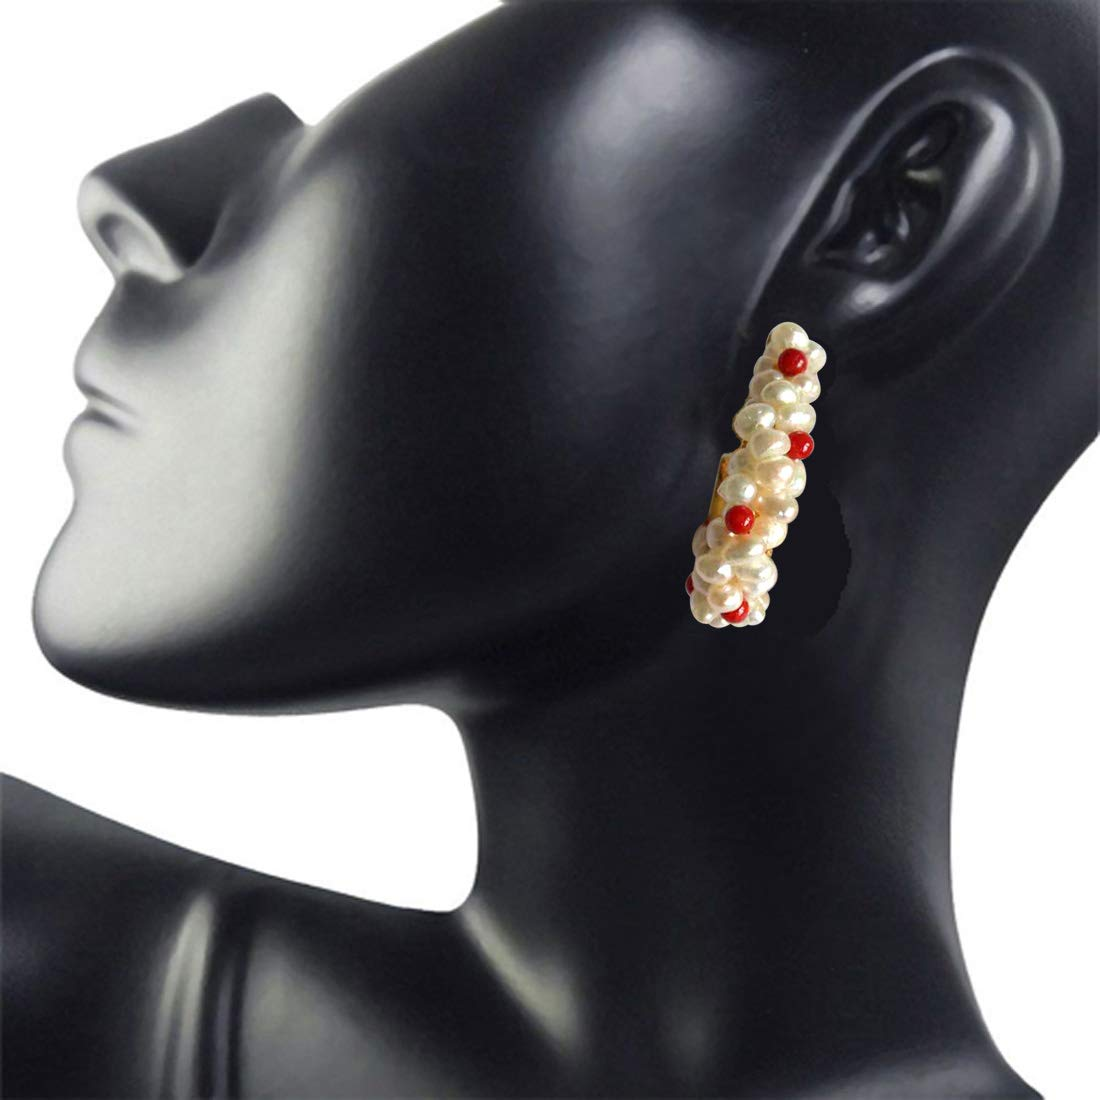 Charming Bali - Real Freshwater Pearl & Red Coral Twisted Bali Style Earrings for Women (SE28)